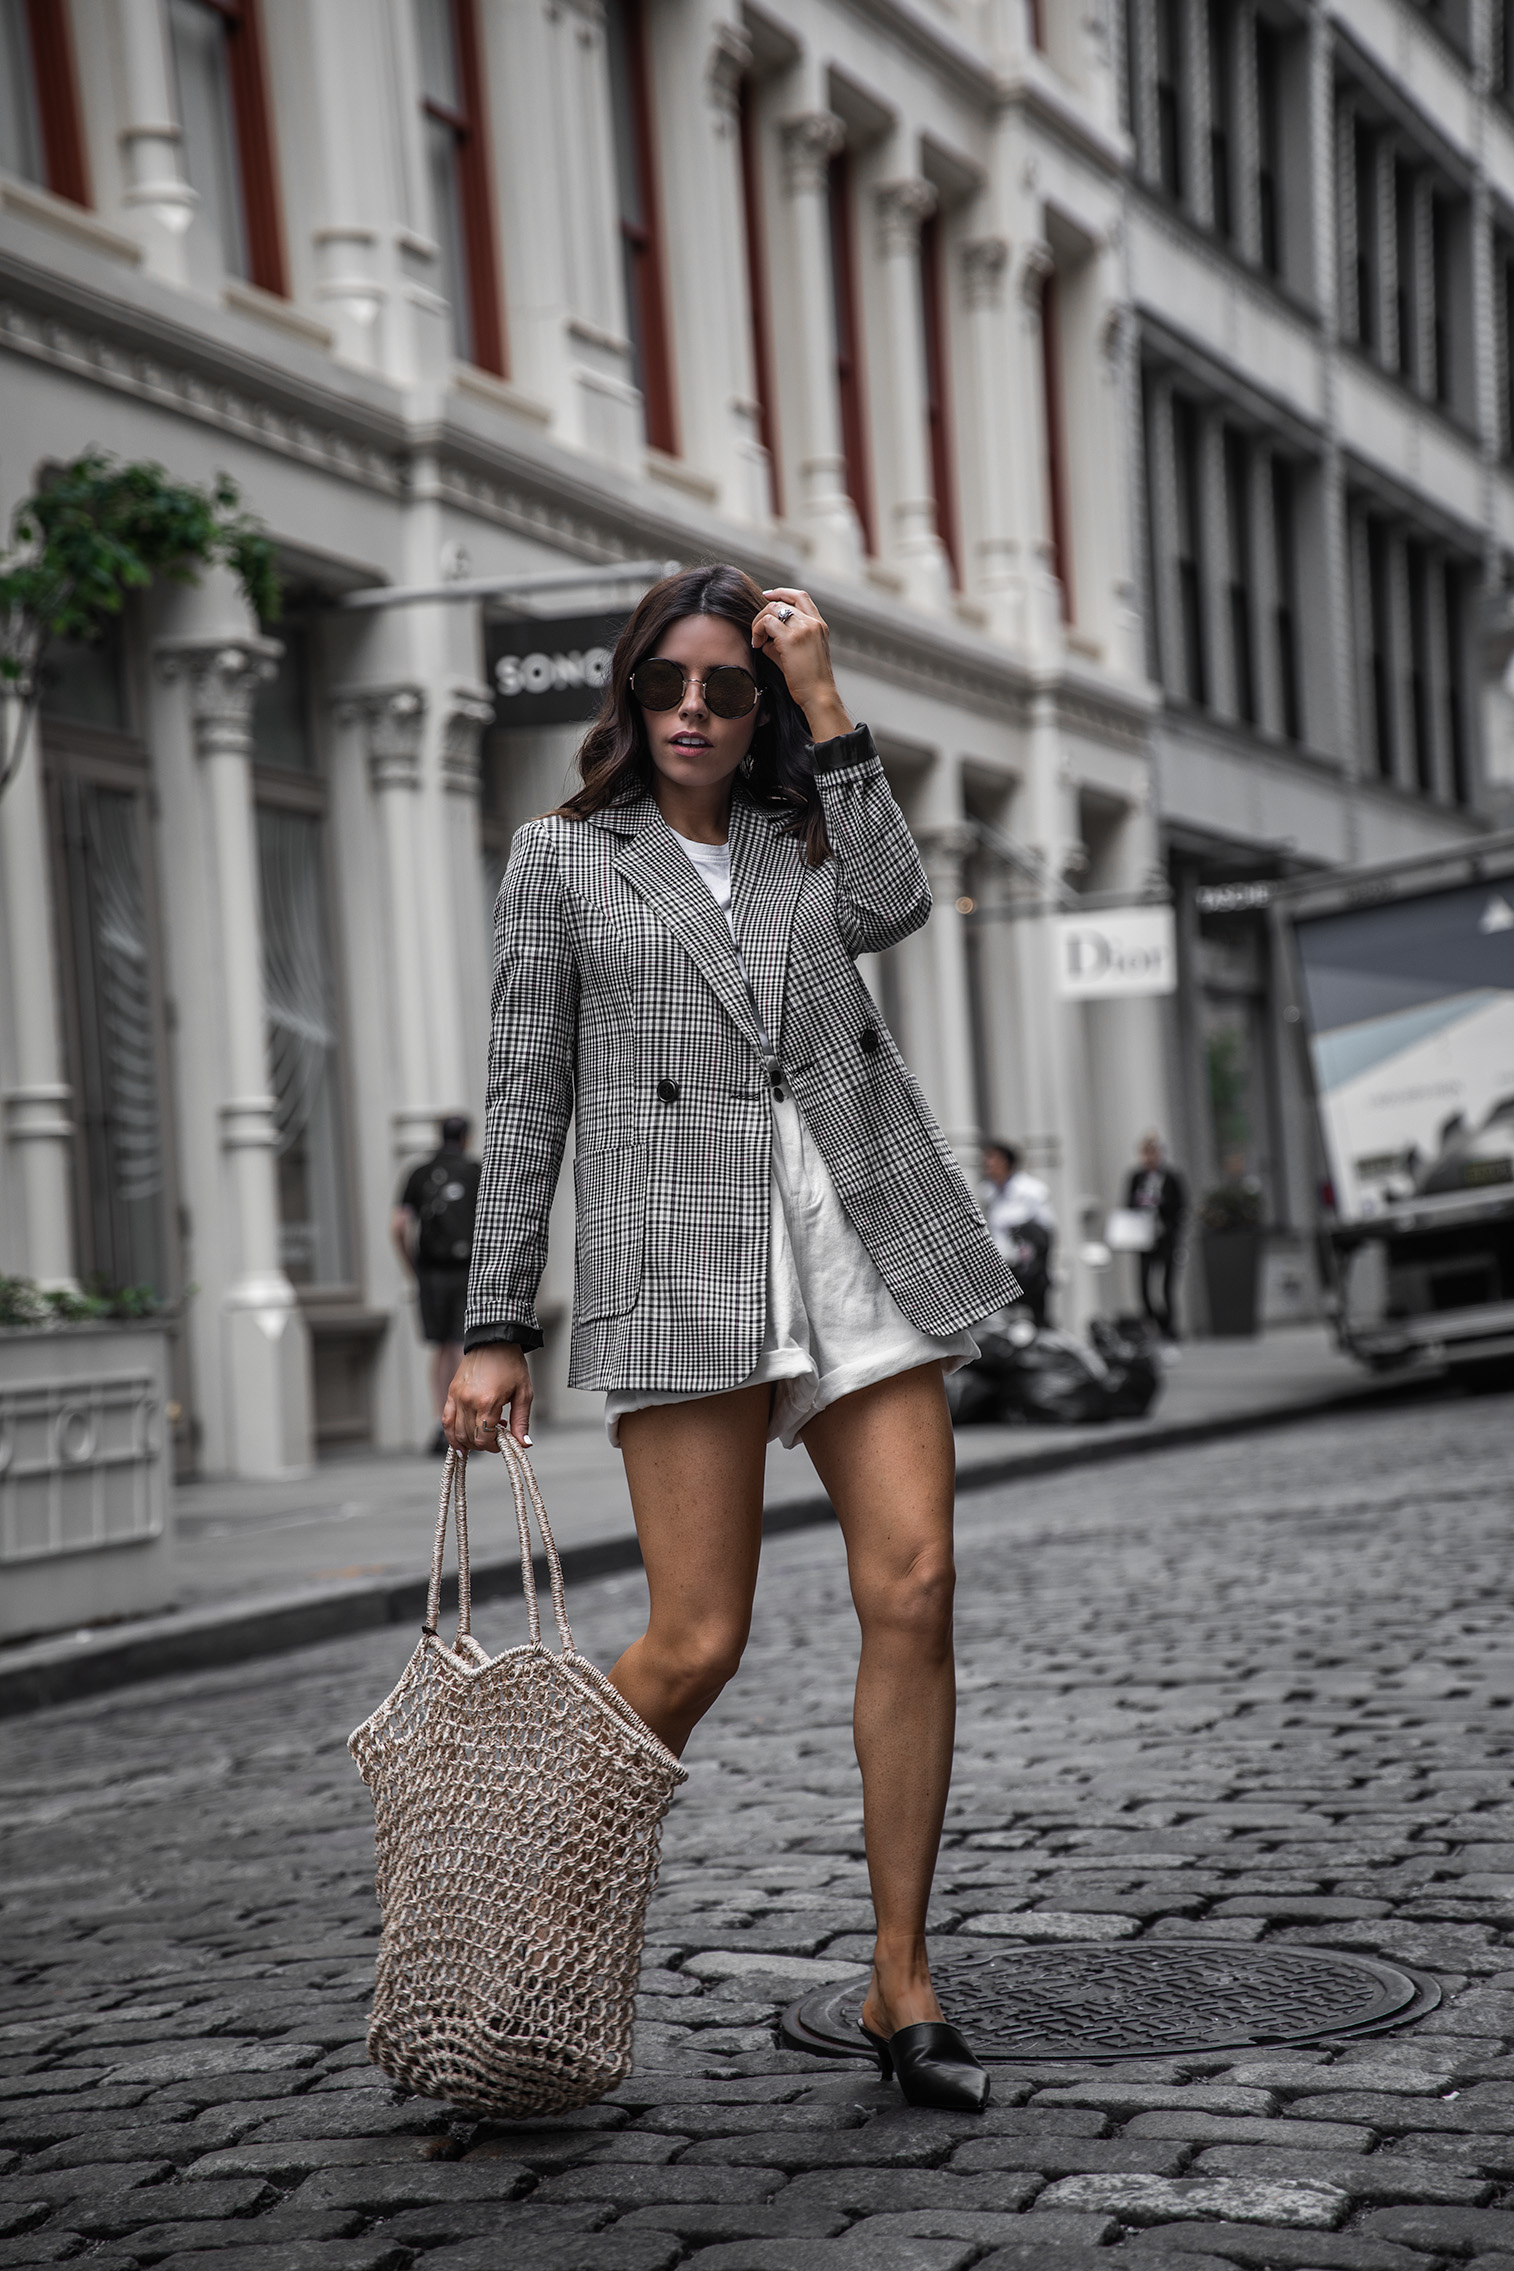 Paper Bag Shorts Trend | Plaid Blazer | White Paper Bag Denim Shorts |  Mule Slide (similar) | Knit Bag (similar)